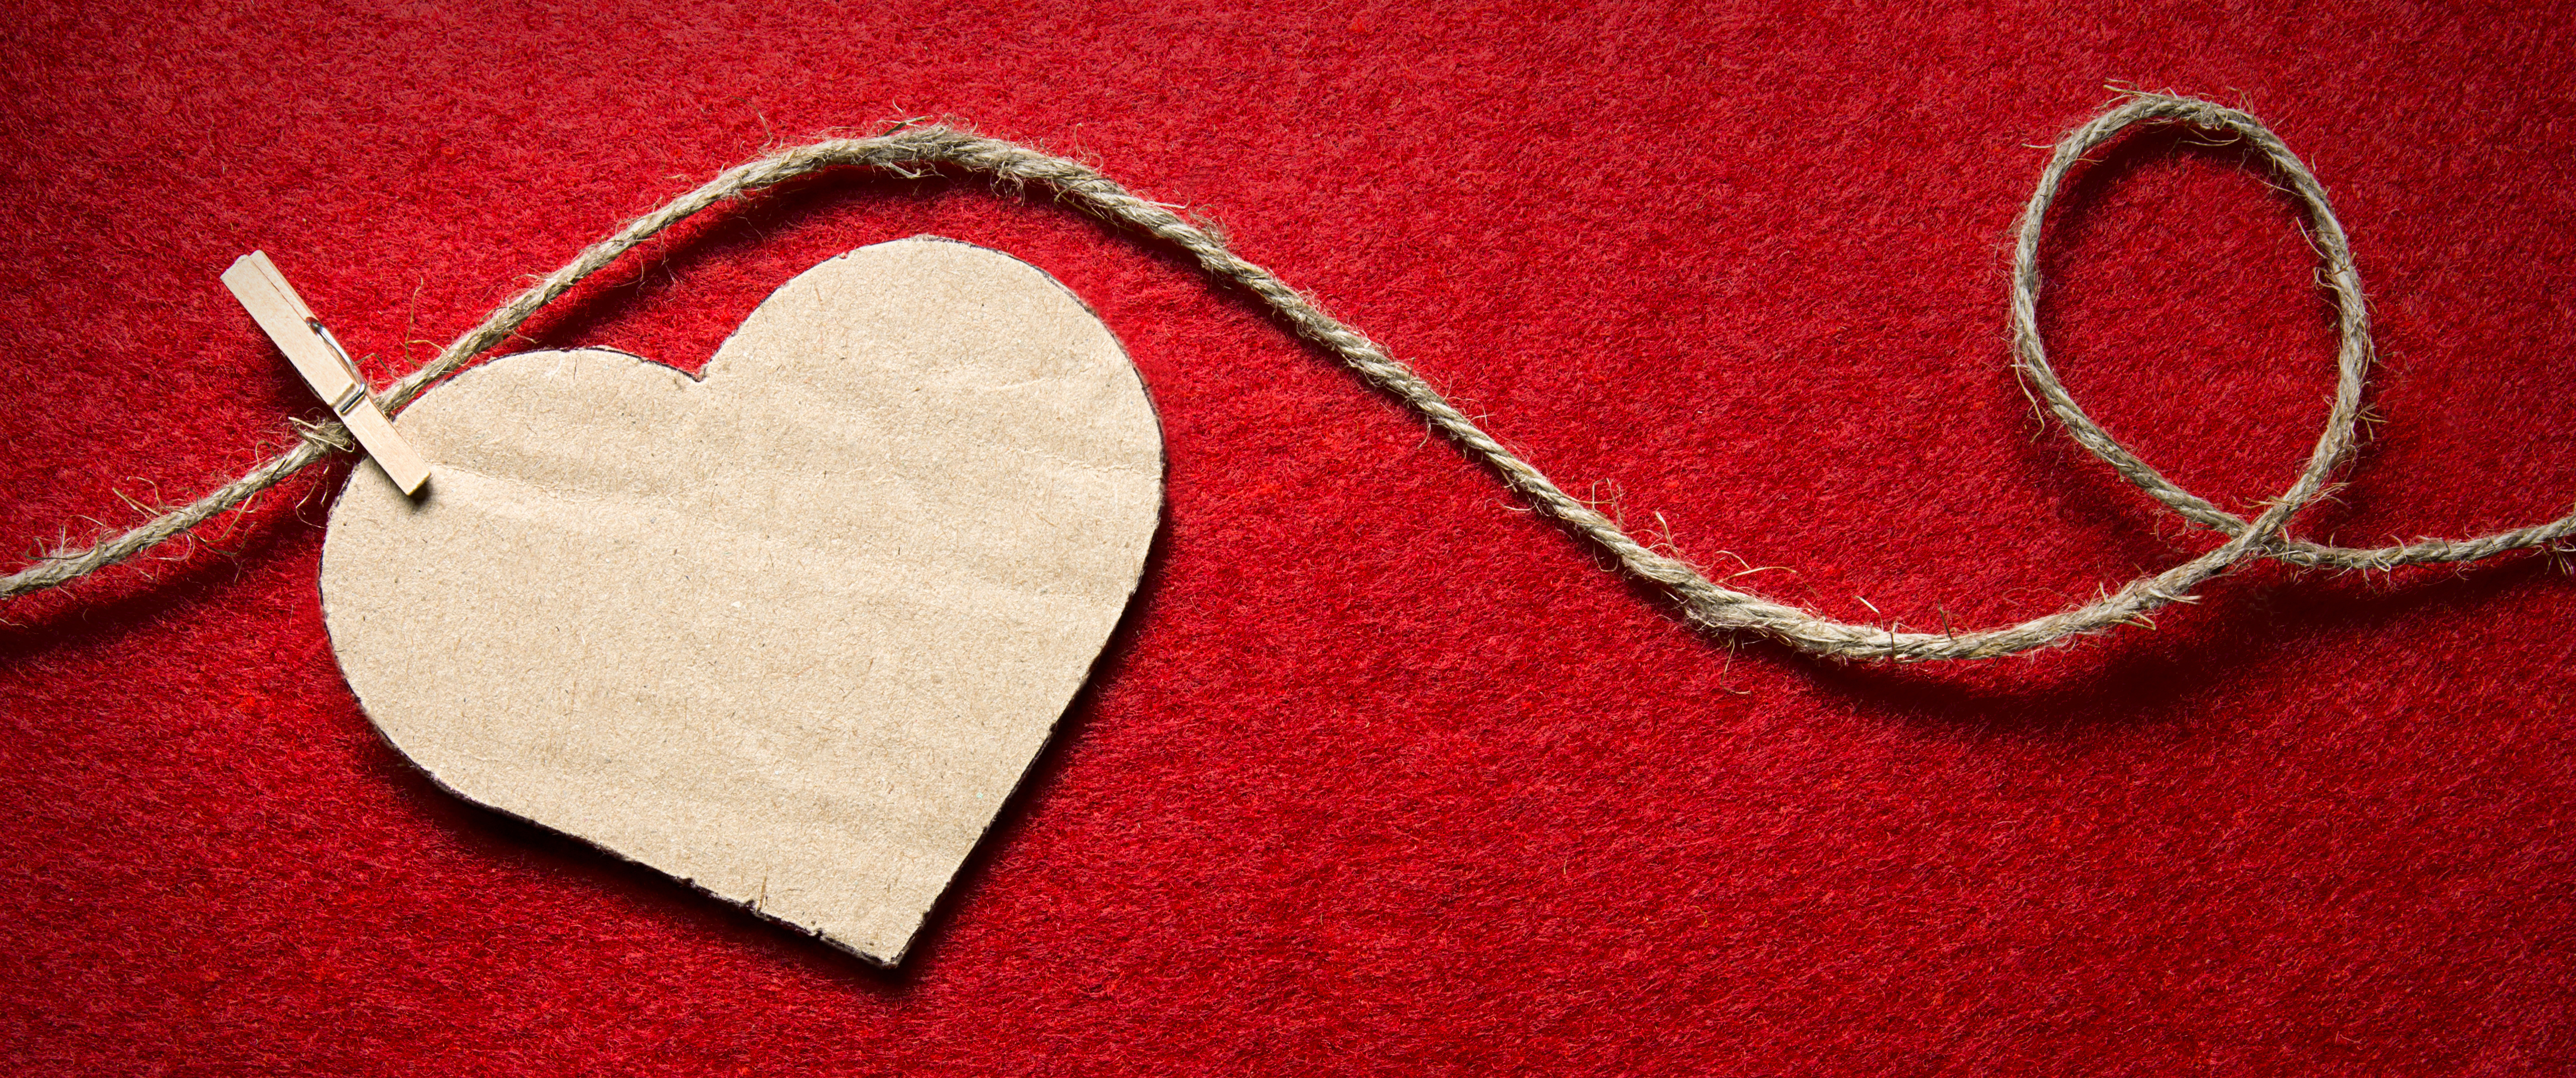 Heart From Cardboard On Rope With Clothespin On Red